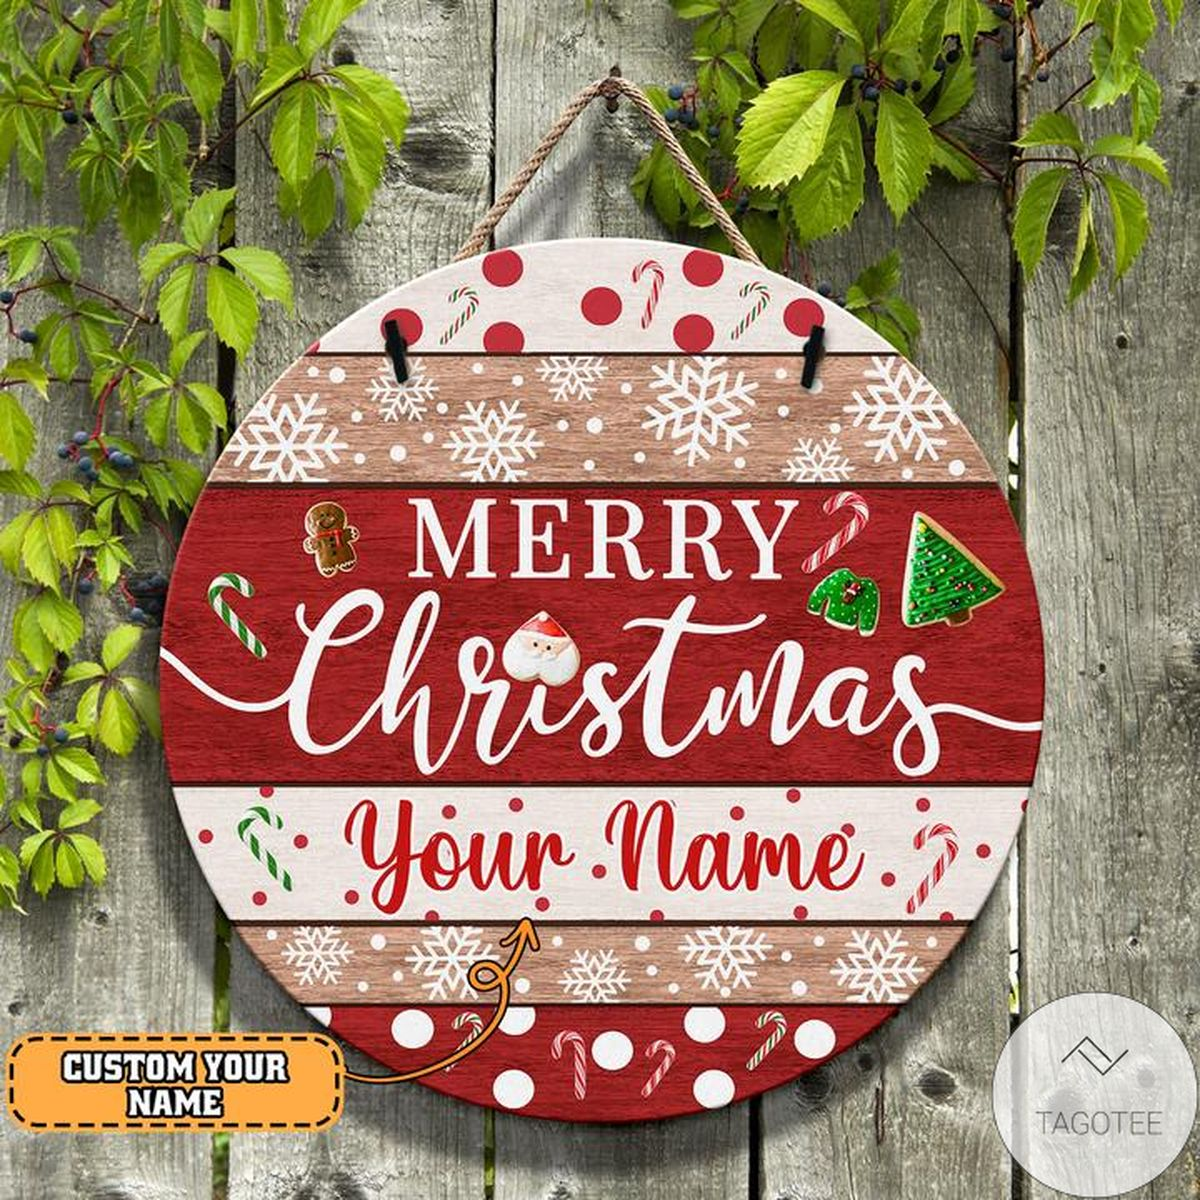 Awesome Personalized Merry Christmas Round Wooden Sign